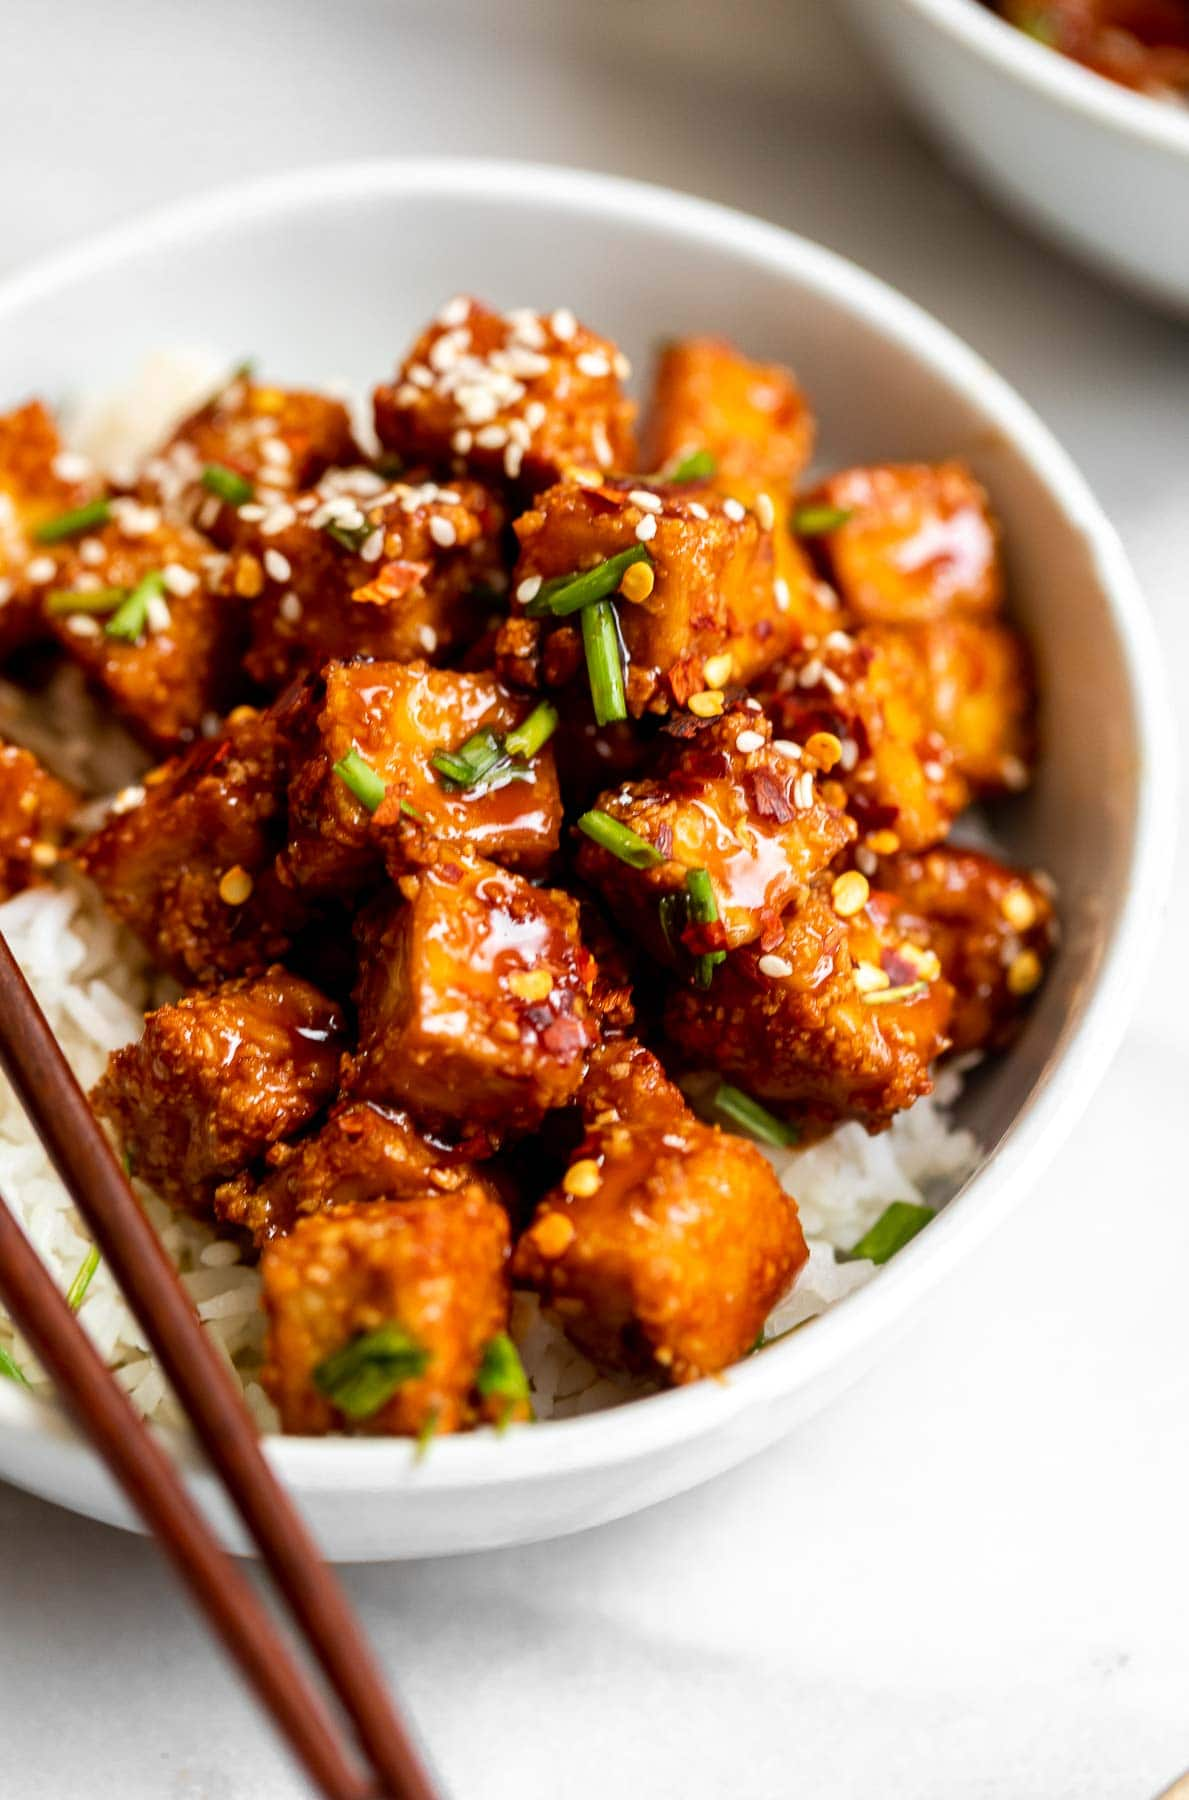 Baked teriyaki tofu with chopped chives on top in a bowl.